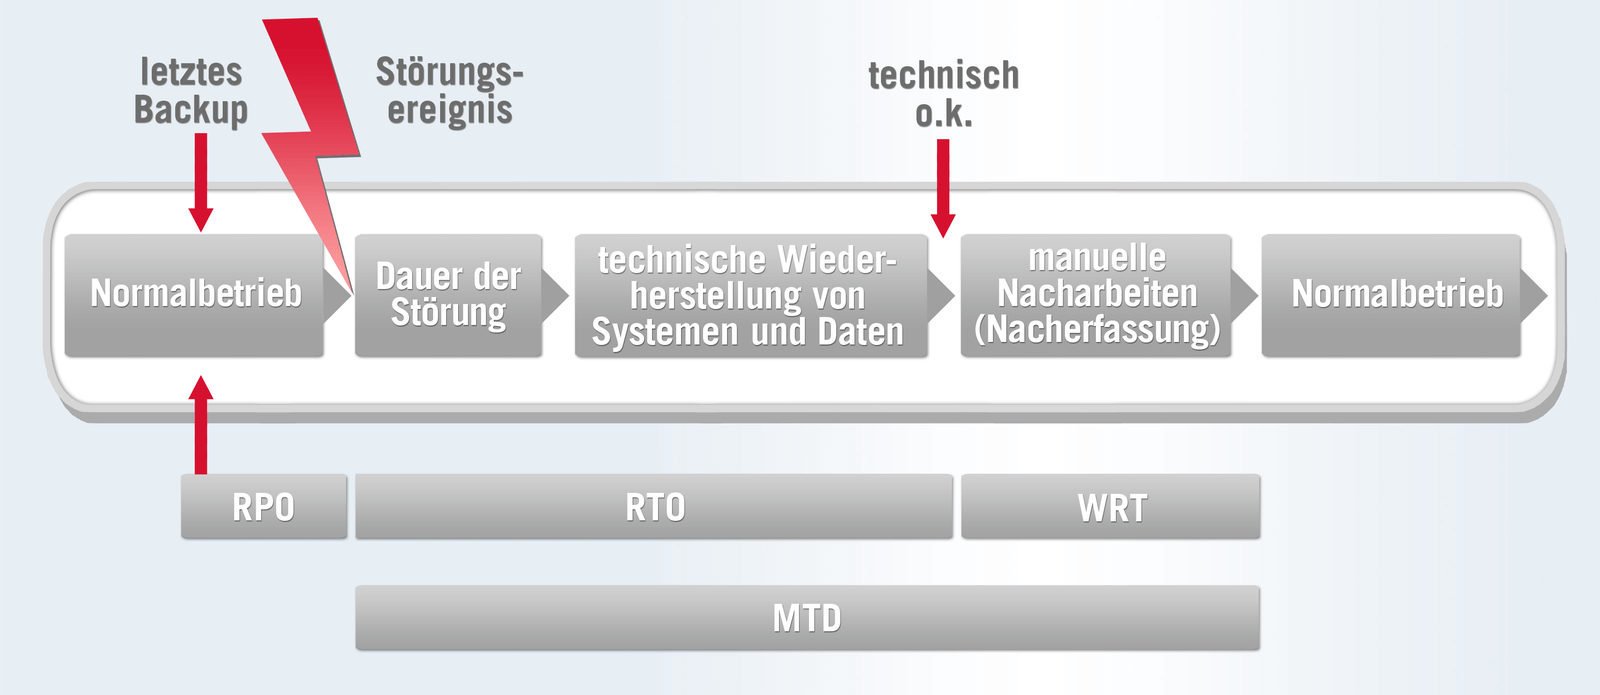 Datensicherung DaSi RPO RTO WRT MTD - Uptime IT